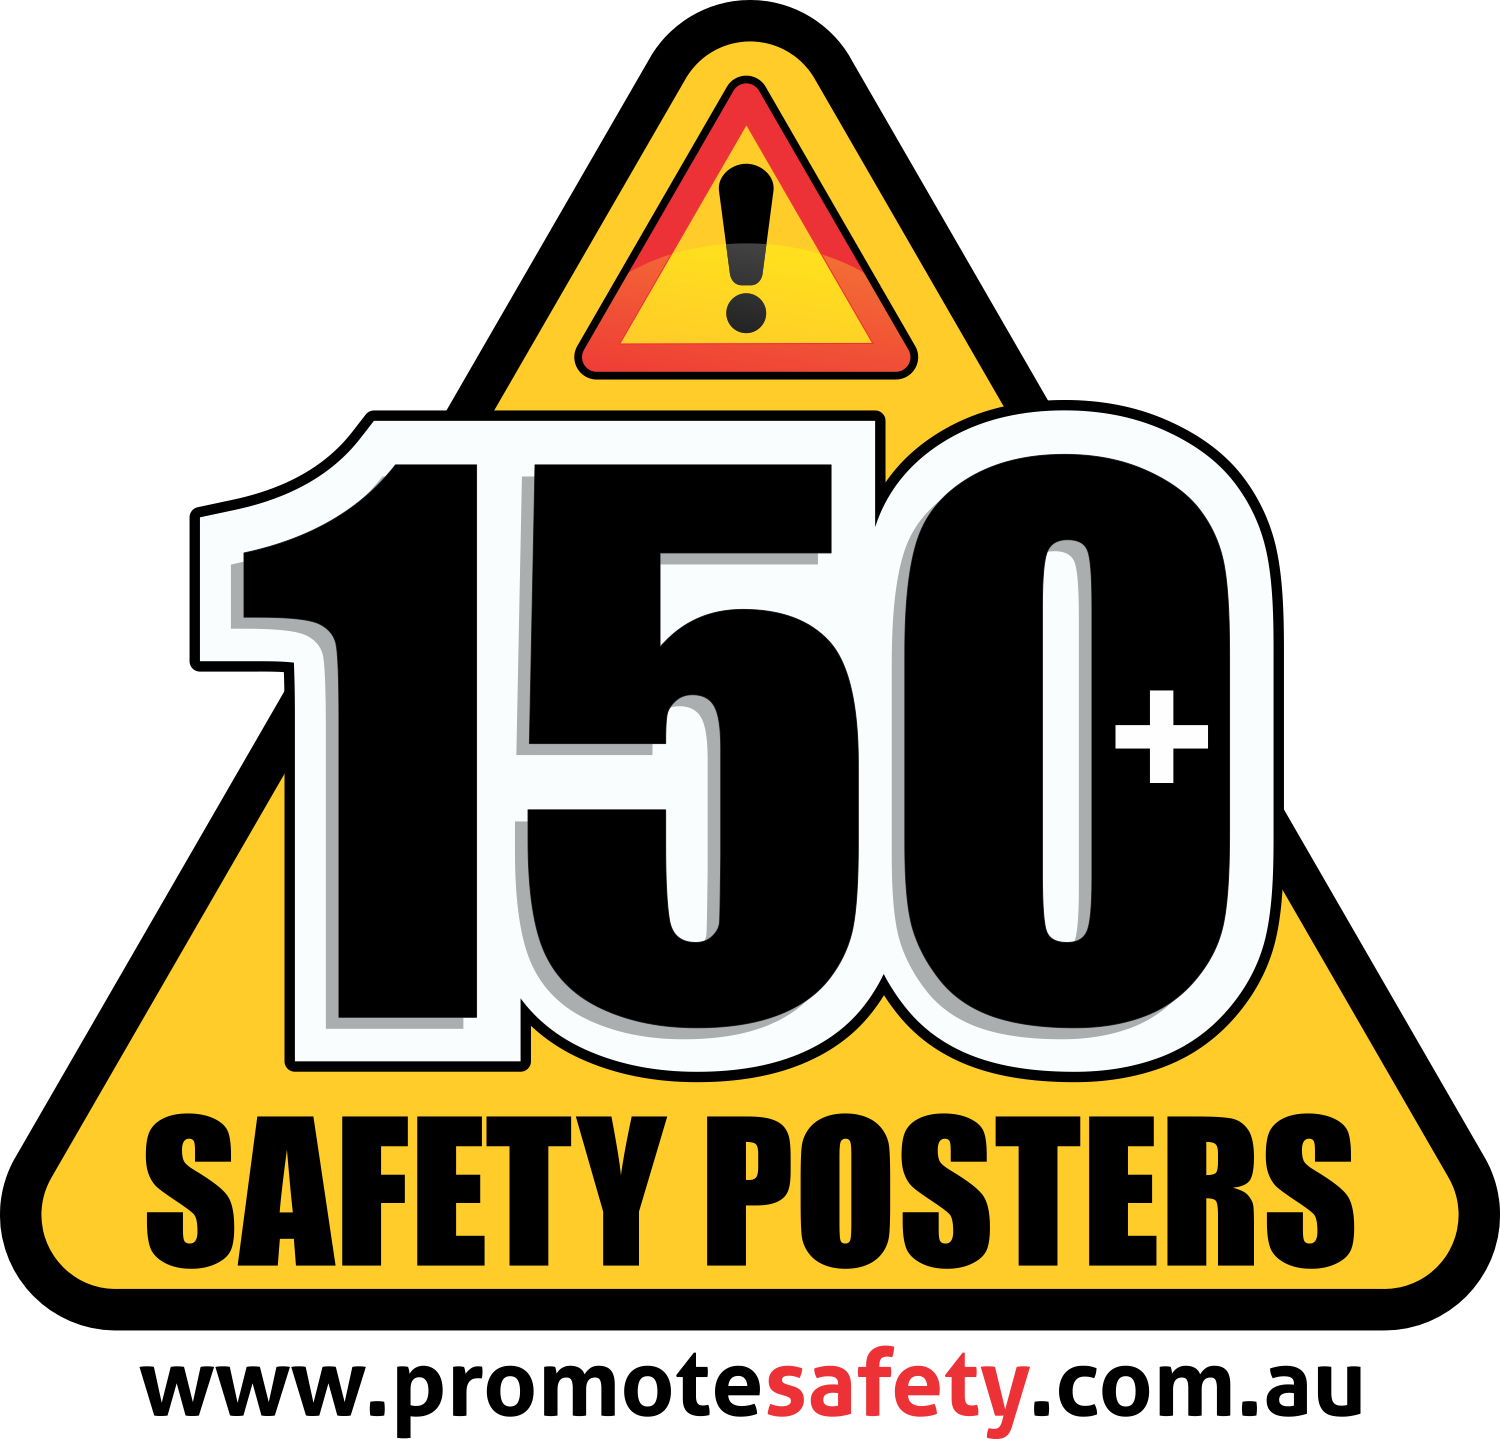 Pin by Promote Safety on Workplace Safety Posters Health